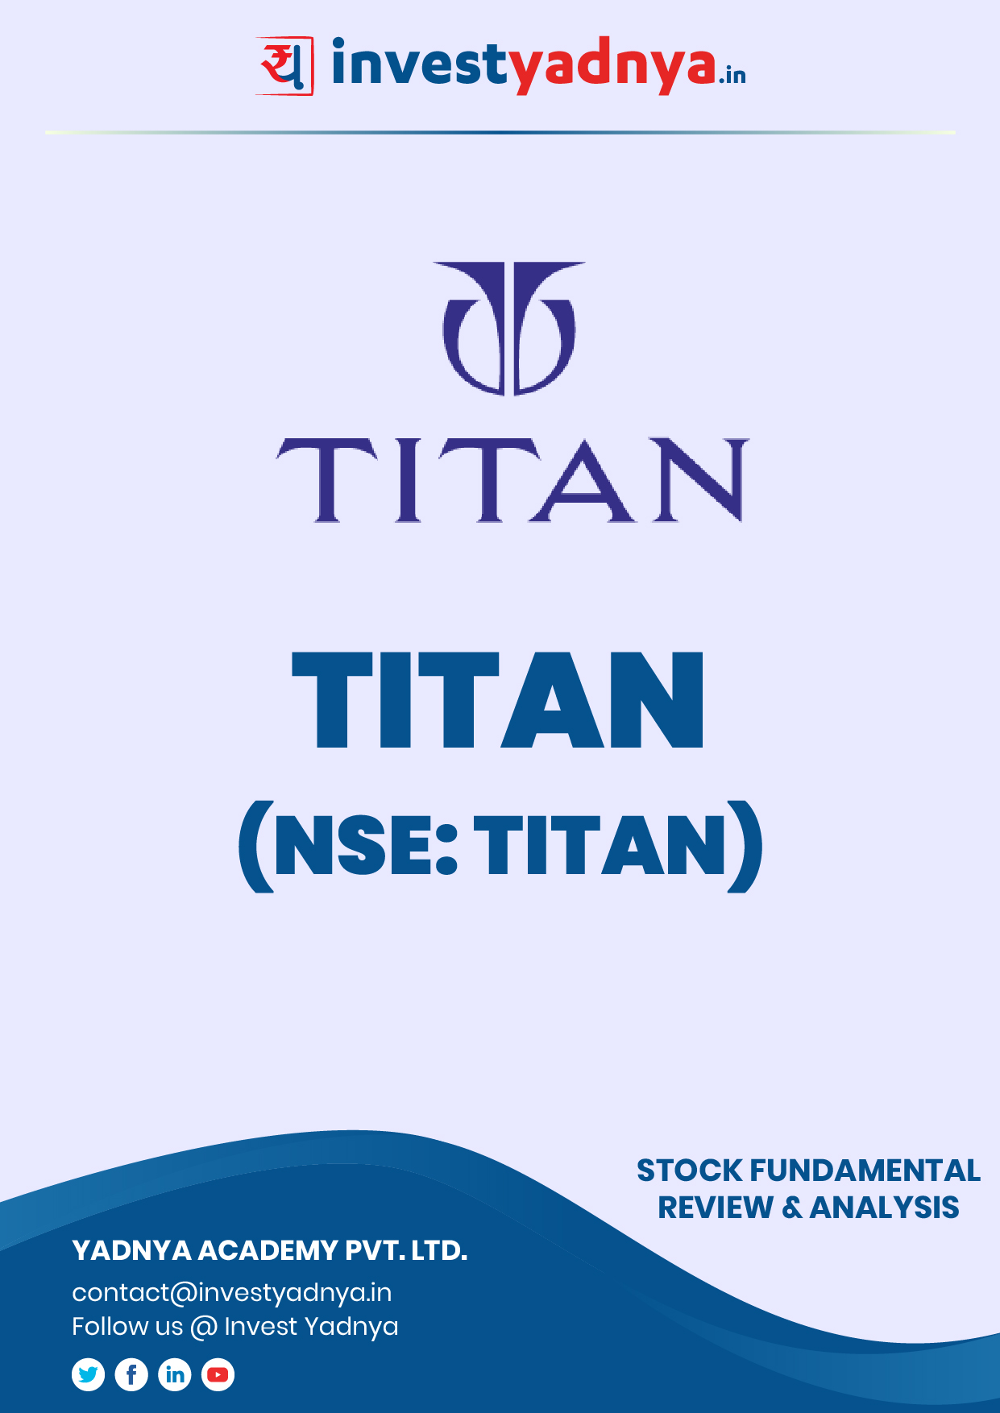 This e-book contains in-depth fundamental analysis of Titan considering both Financial and Equity Research Parameters. It reviews the company, industry competitors, shareholding pattern, financials, and annual performance. ✔ Detailed Research ✔ Quality Reports